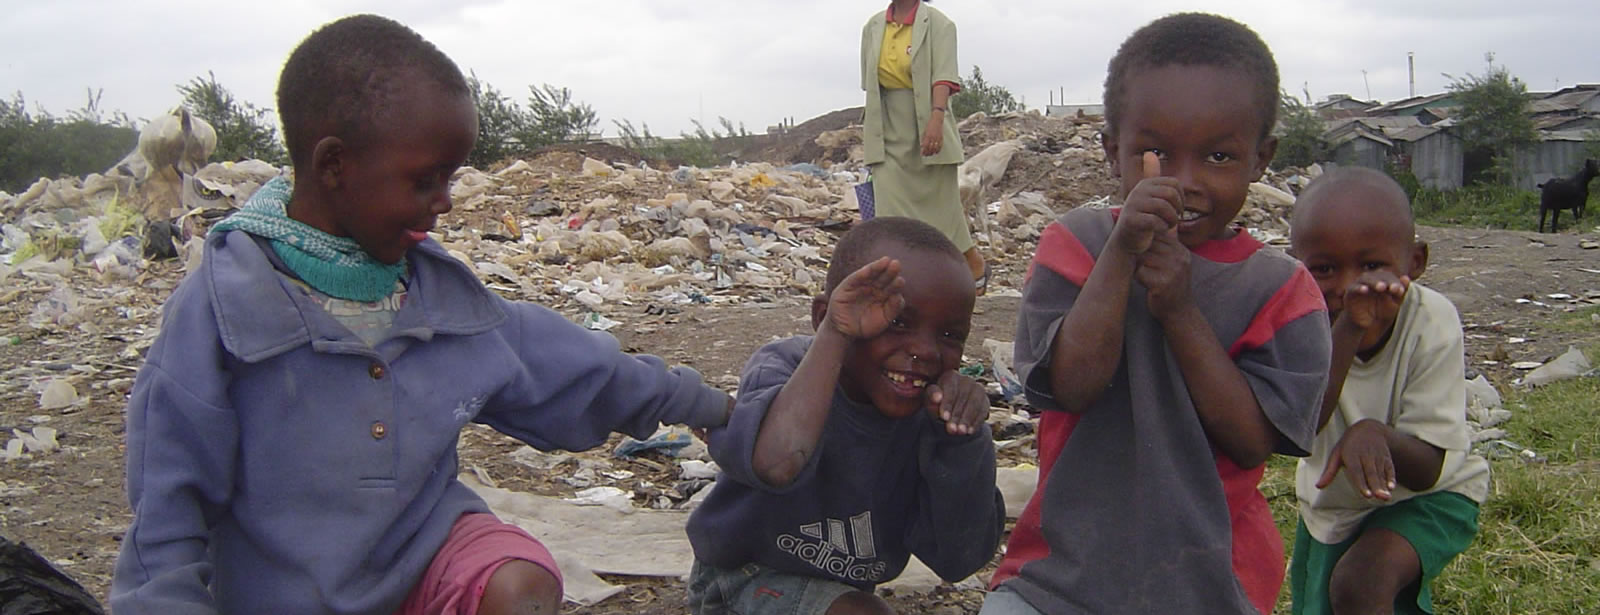 Children-and-dumpsite-in-Mukuru-slums.Photo_.-Alba